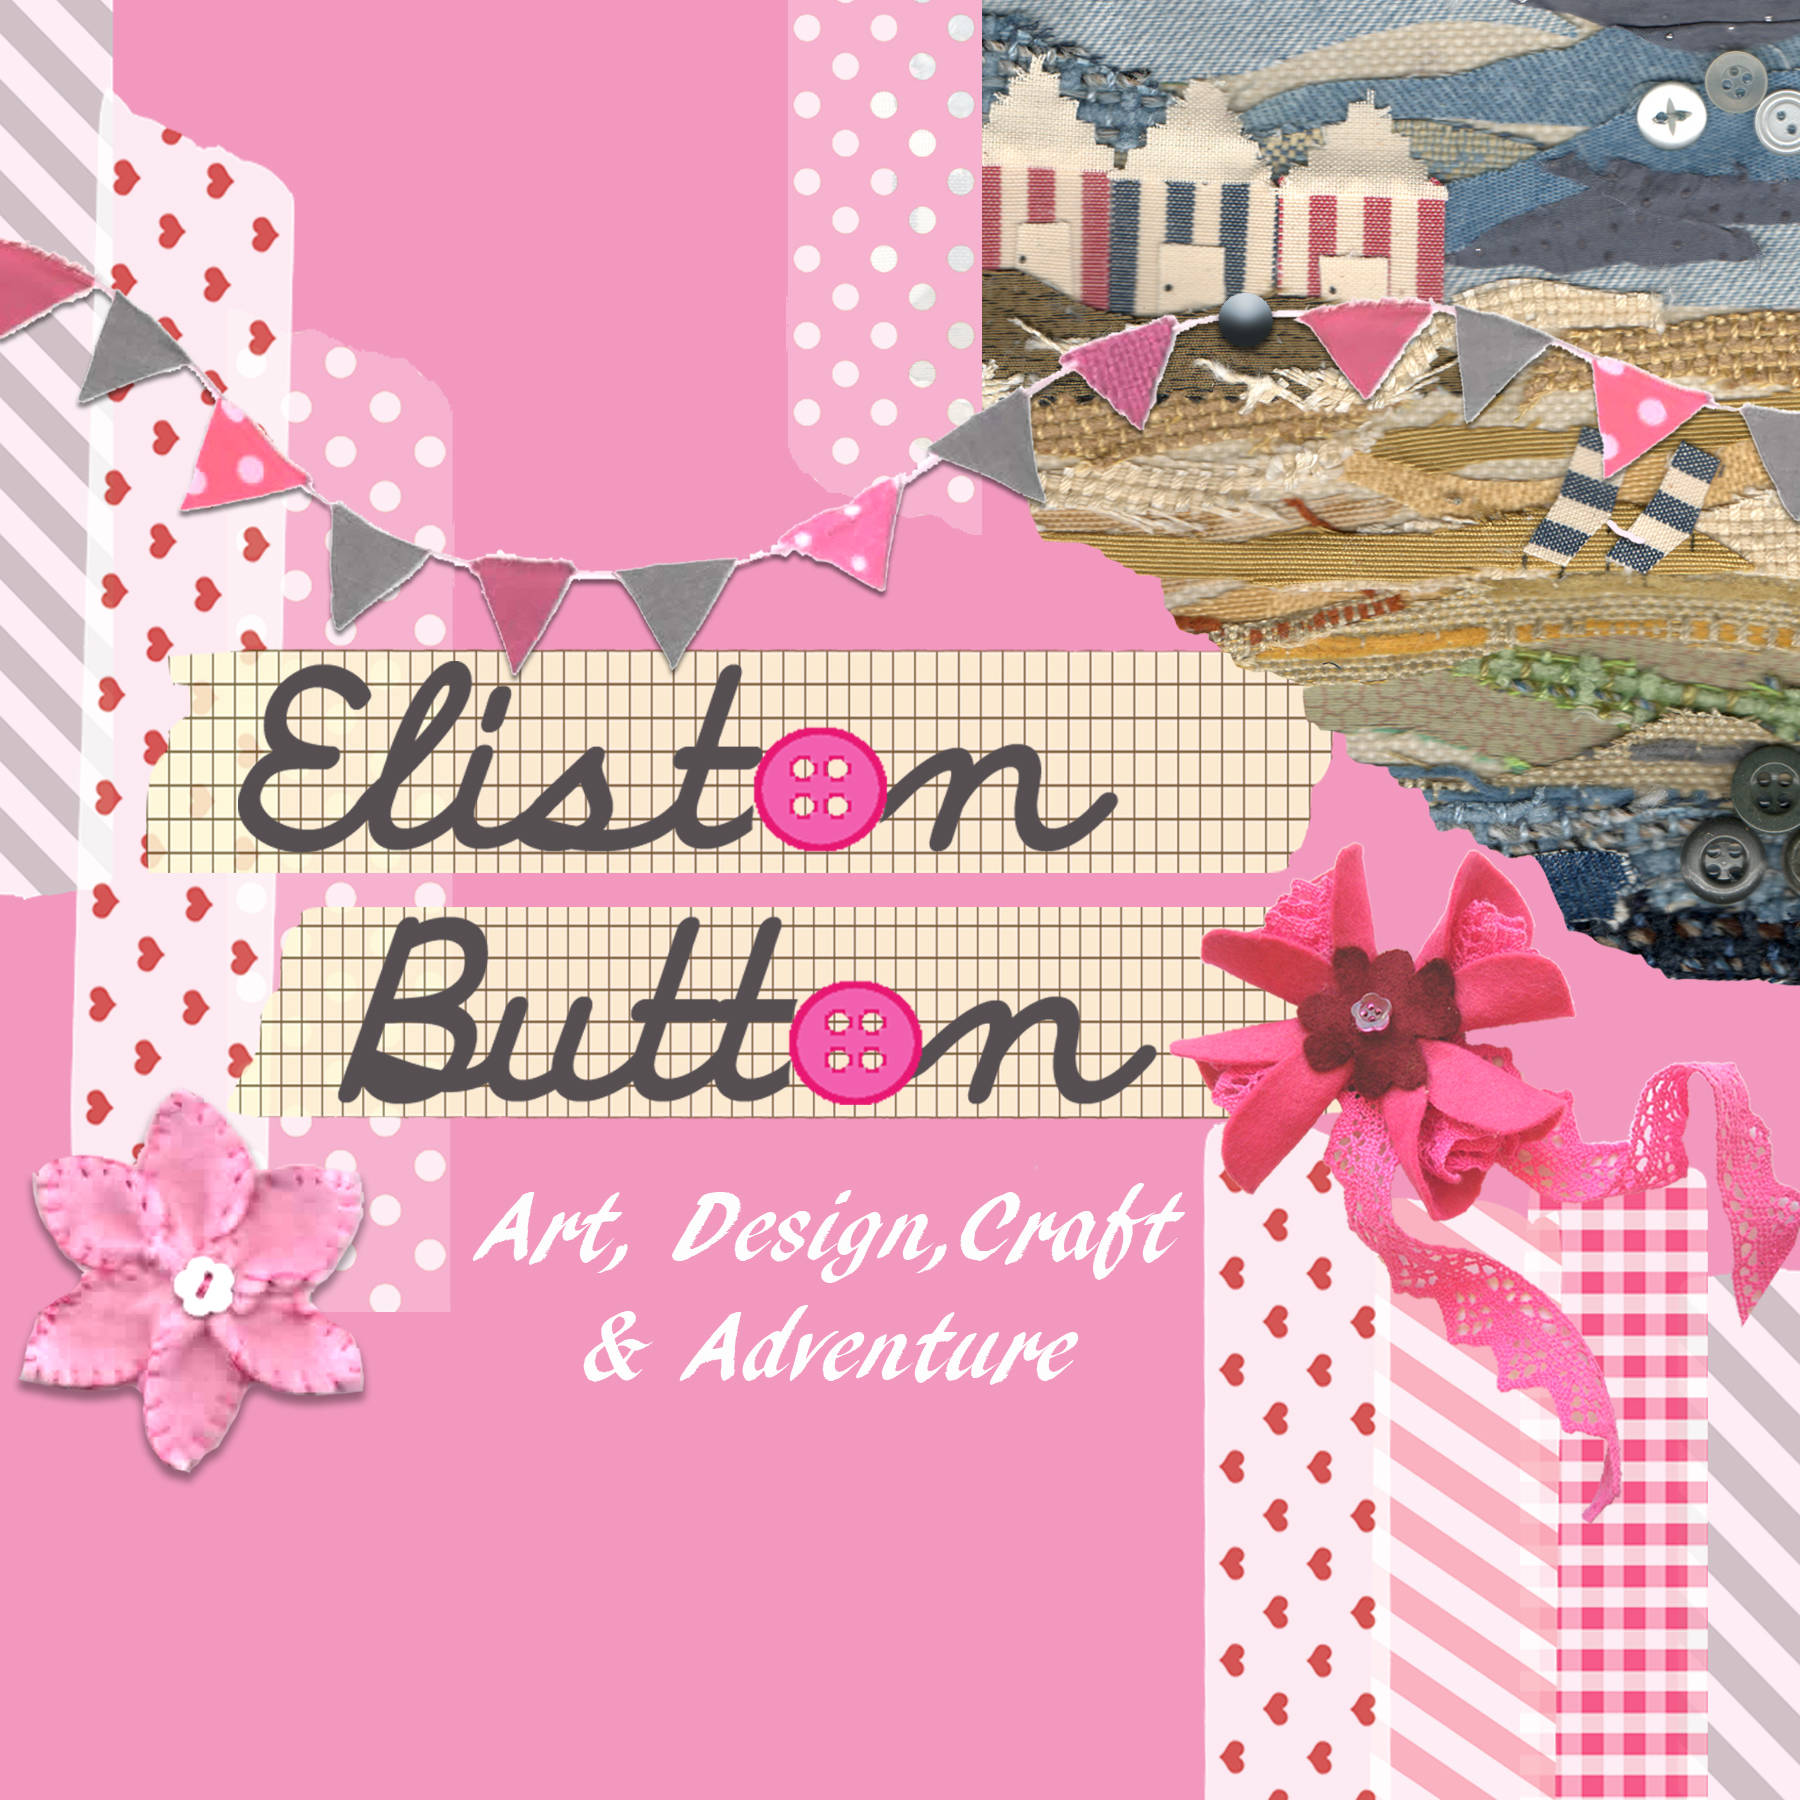 Day One - Your Brand for Meet the Maker Week - Eliston Button Handmade Home Decor, Jewellery and Accessory Treasures on Etsy. - Meet the Maker Week at www.elistonbutton.com - Eliston Button - That Crafty Kid – Art, Design, Craft & Adventure.